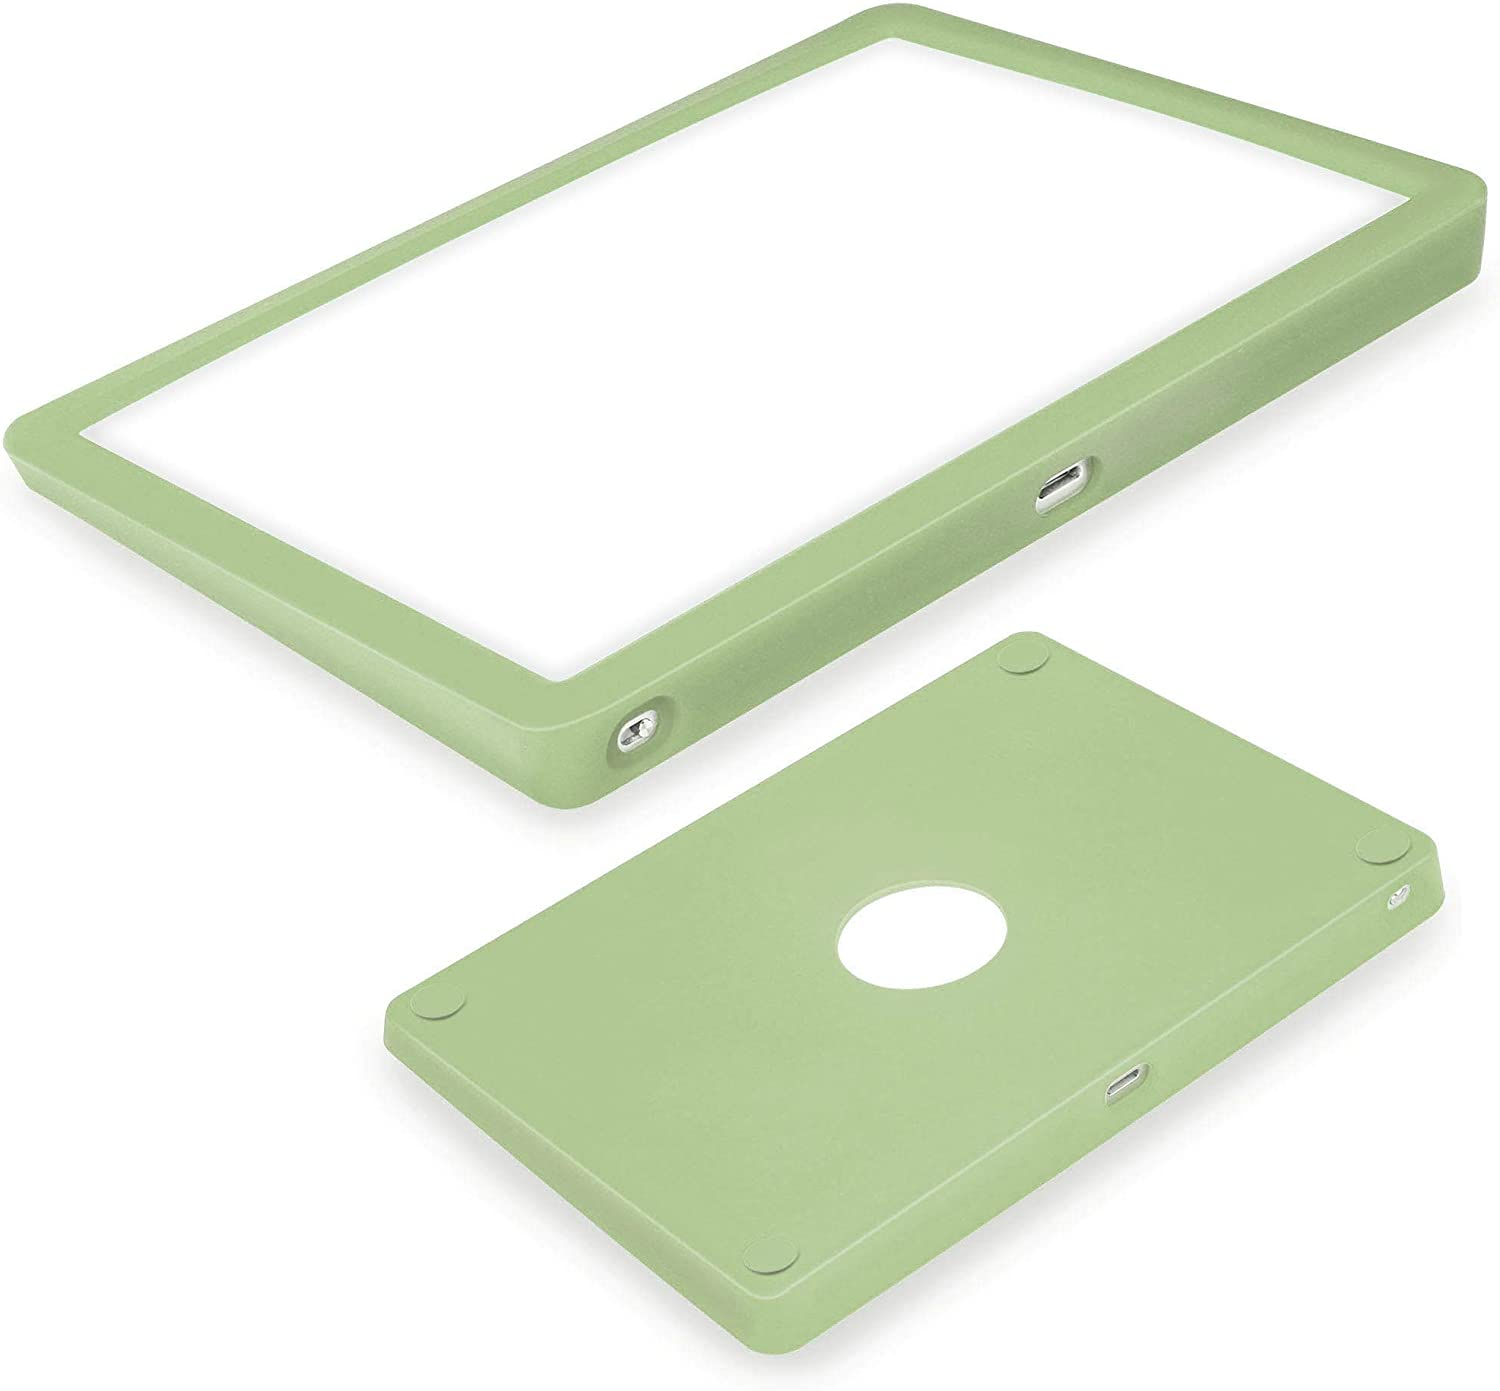 Silicone case for Magic Trackpad 2 Silicon case for Apple Wireless Touchpad Apple Trackpad Protective Cover (Matcha Green)